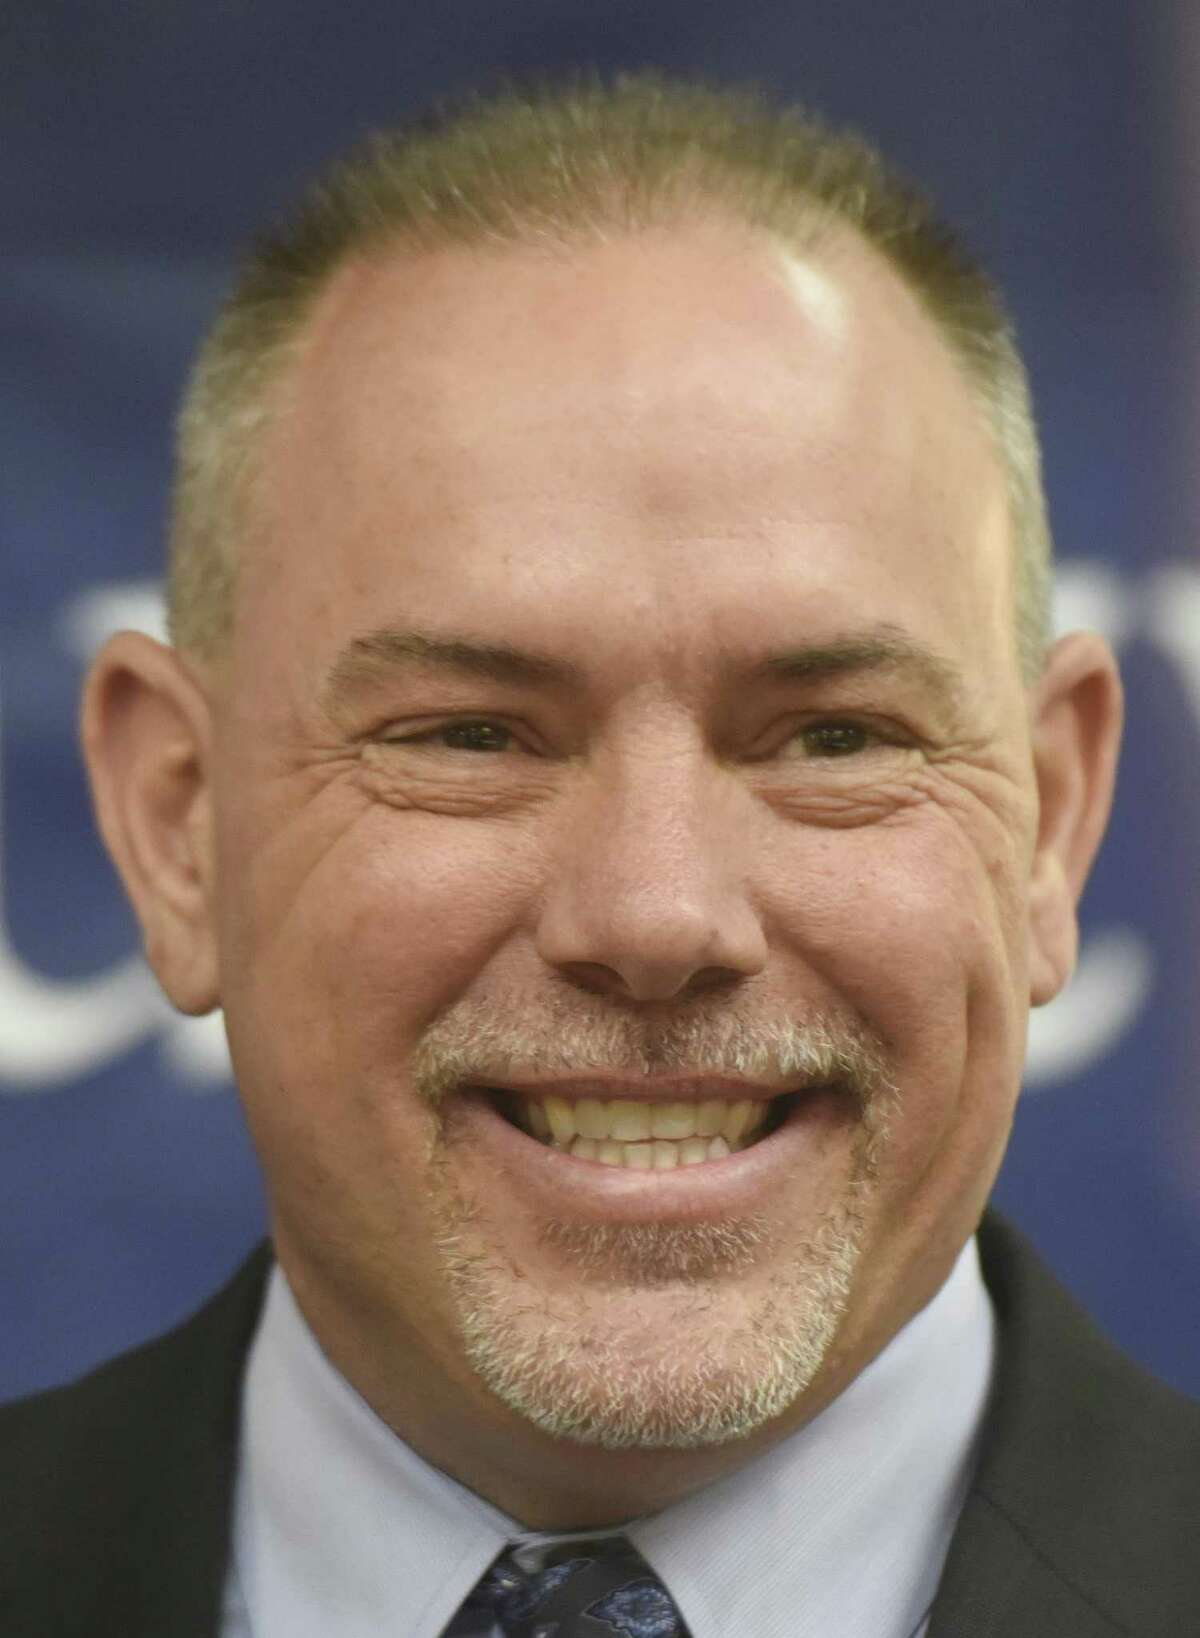 Speaker of the House Joe Aresimowicz, D-Berlin, said Wednesday that a two-year, $39.7-billion budget proposal is a good place to continue bipartisan negotiations. The fiscal year started July 1 without a new state budget and Gov. Dannel Malloy has been running the state on executive orders.